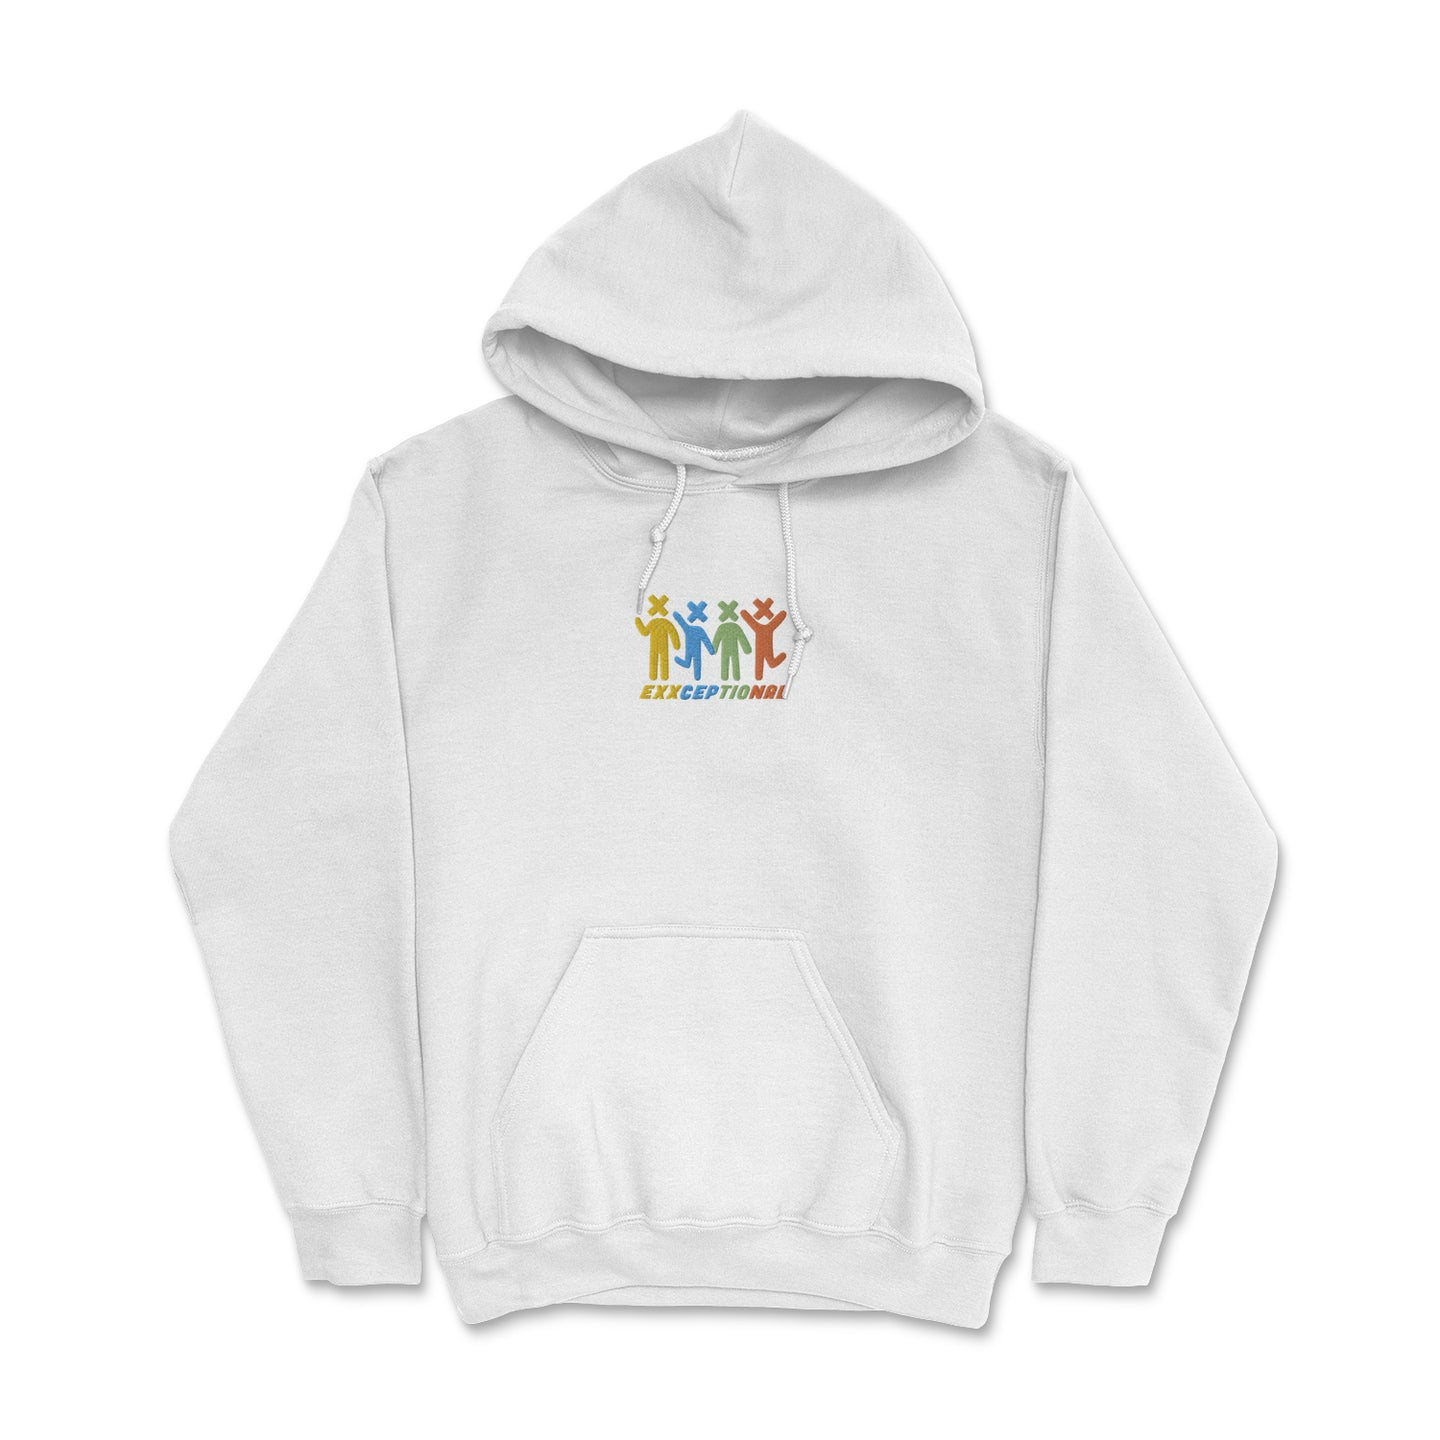 X Heads Embroidered Hoodie